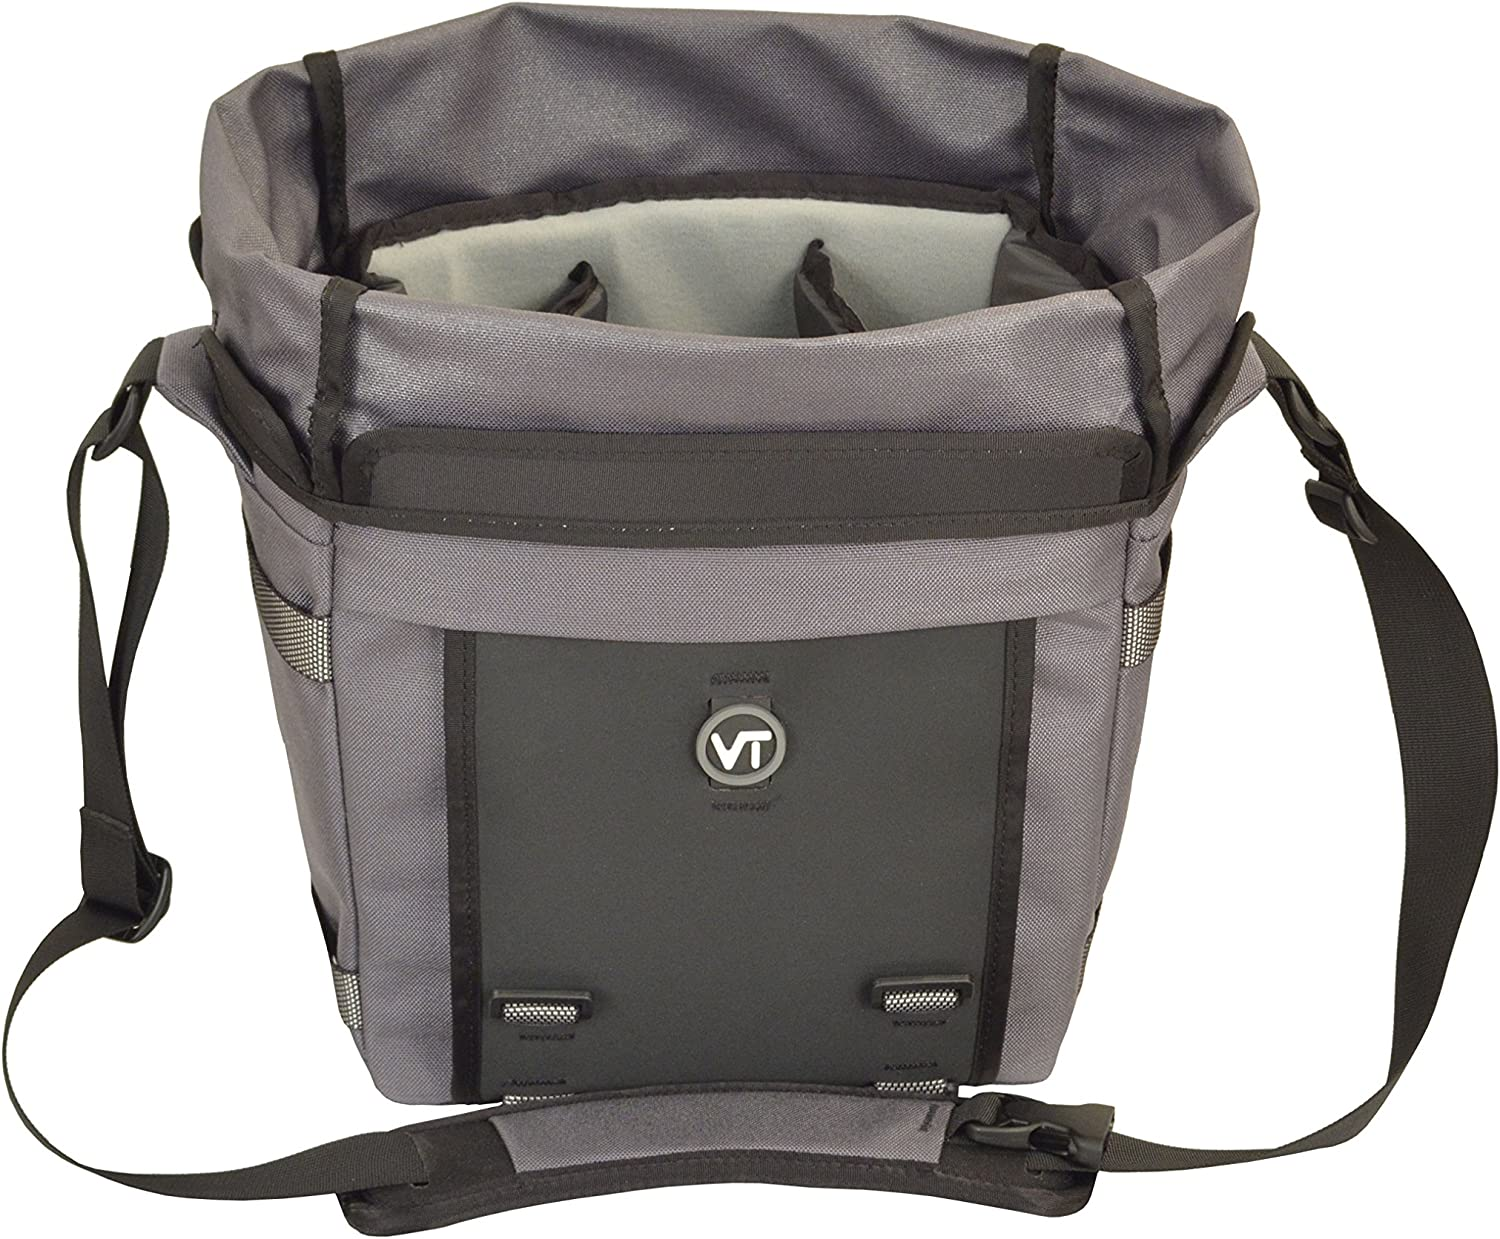 Visiotrek VS-BLK Pixel 7 Camera and Video Recorder Shoulder Bag Black